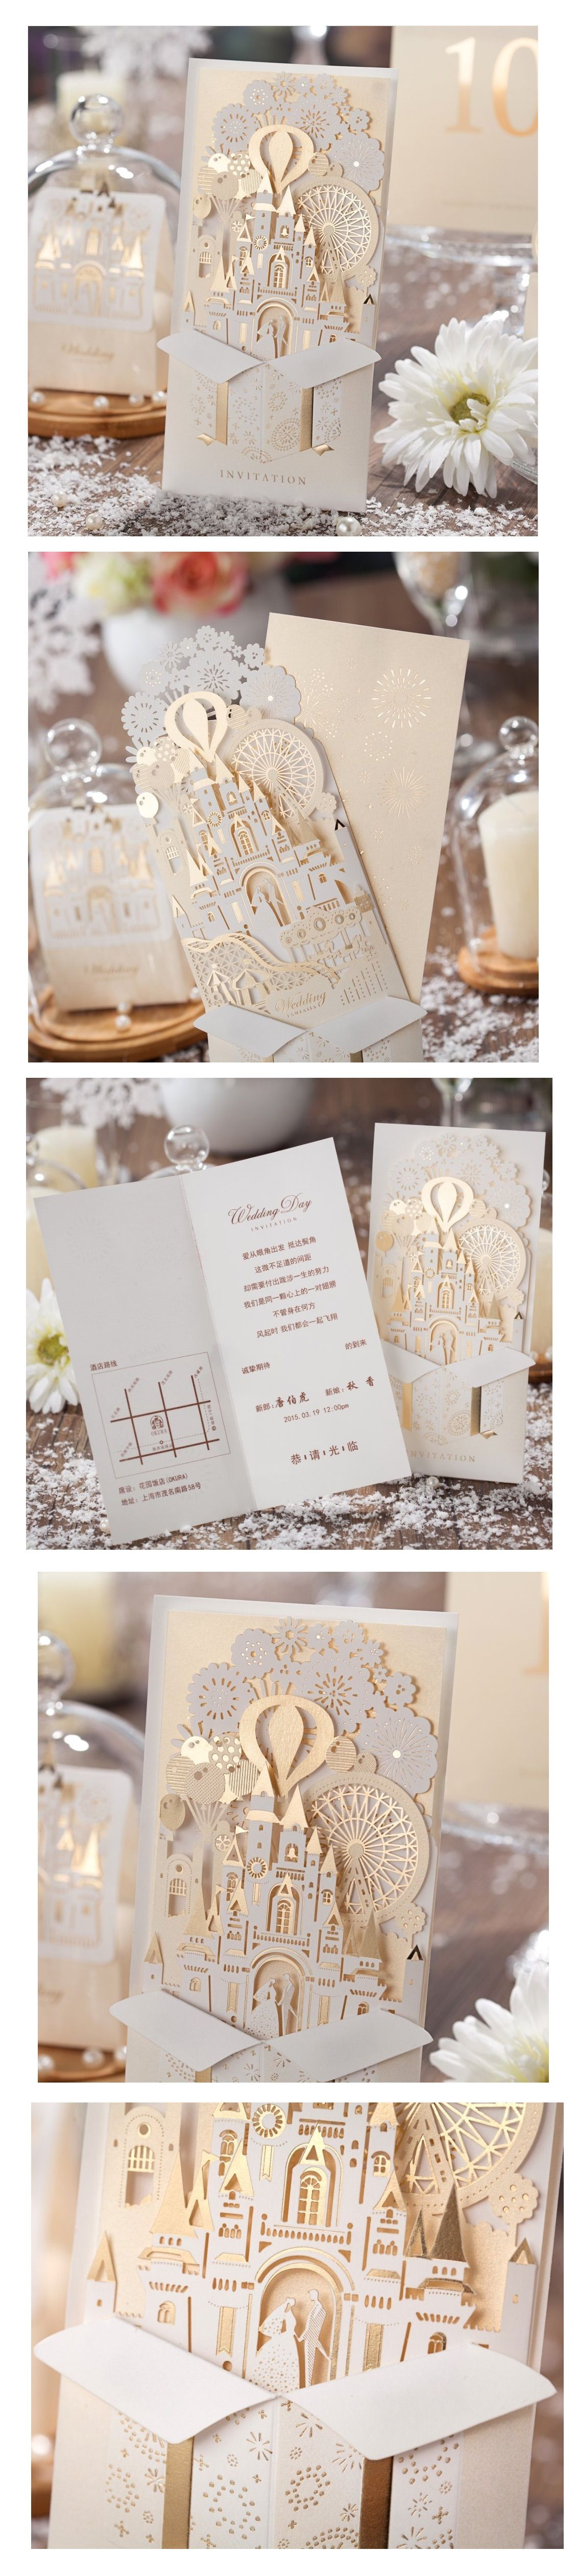 3D Laser Cut Gold Wedding Invitations 50 Piece Set | Pinterest ...